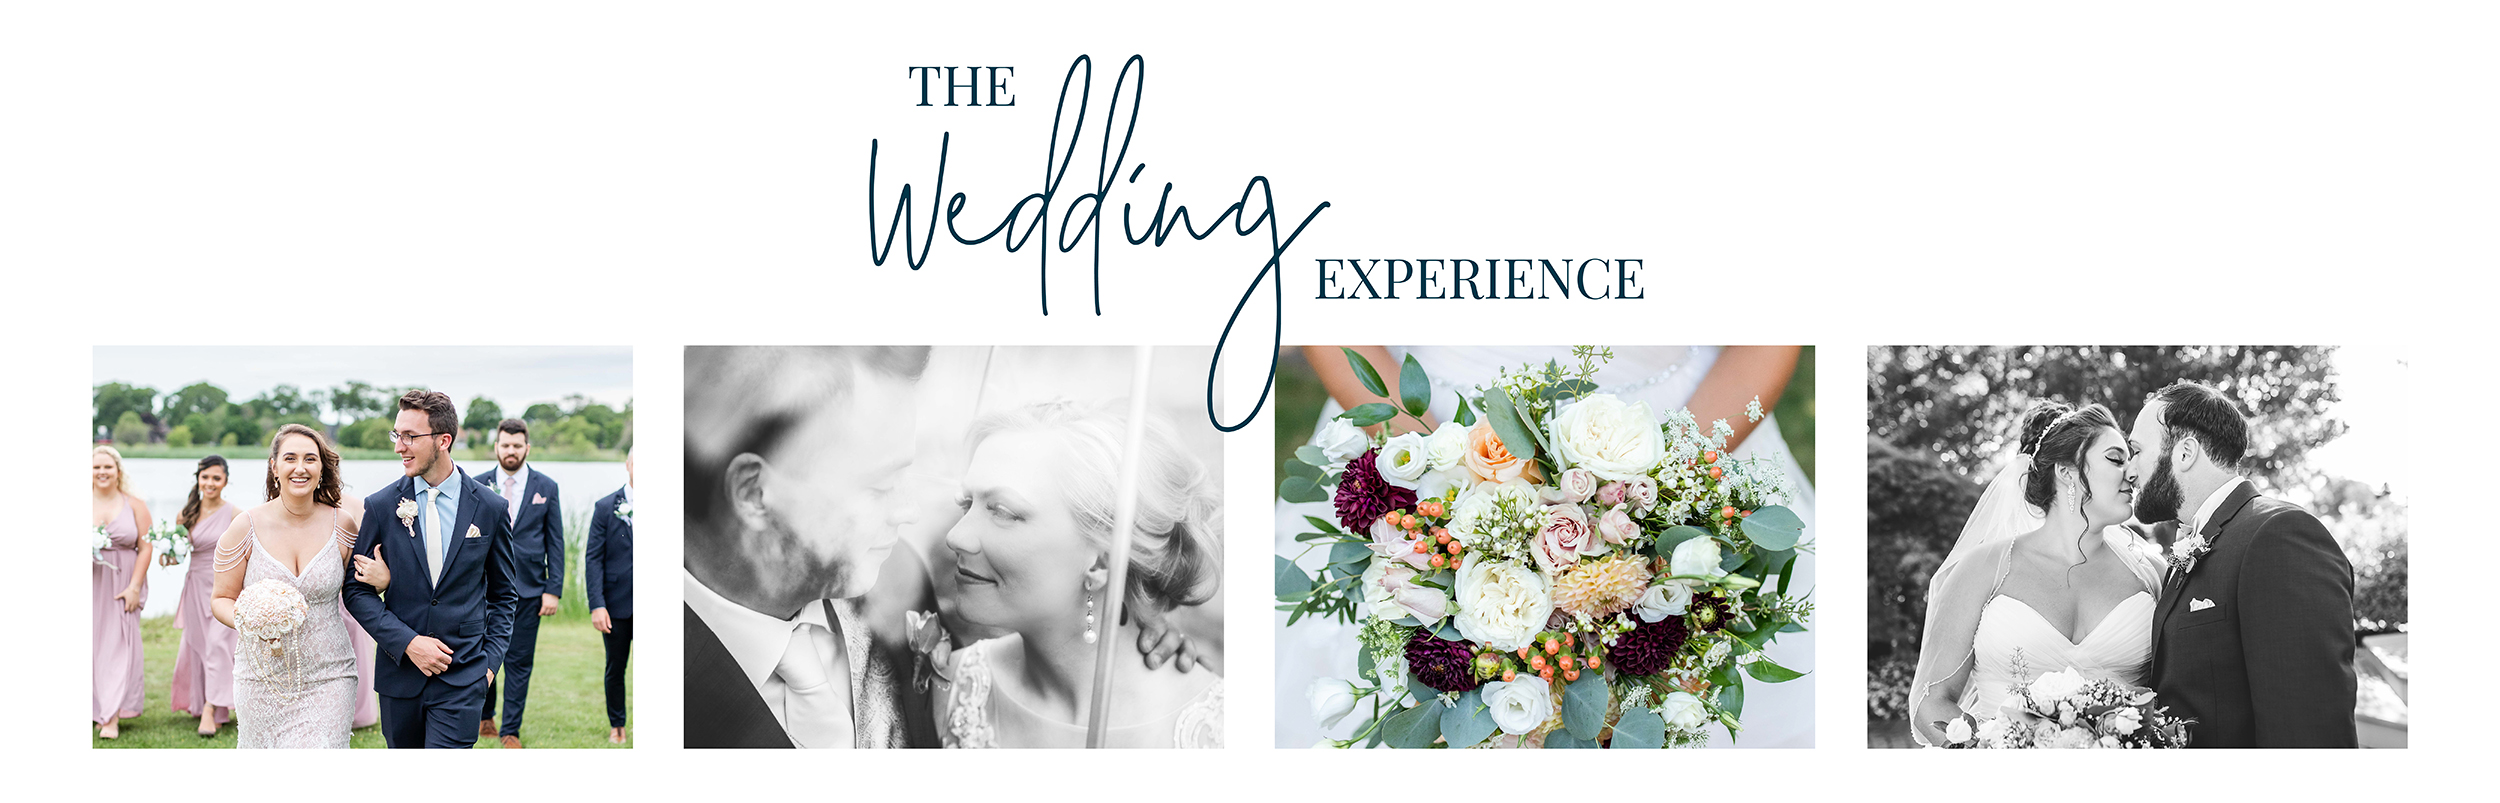 theweddingexperience